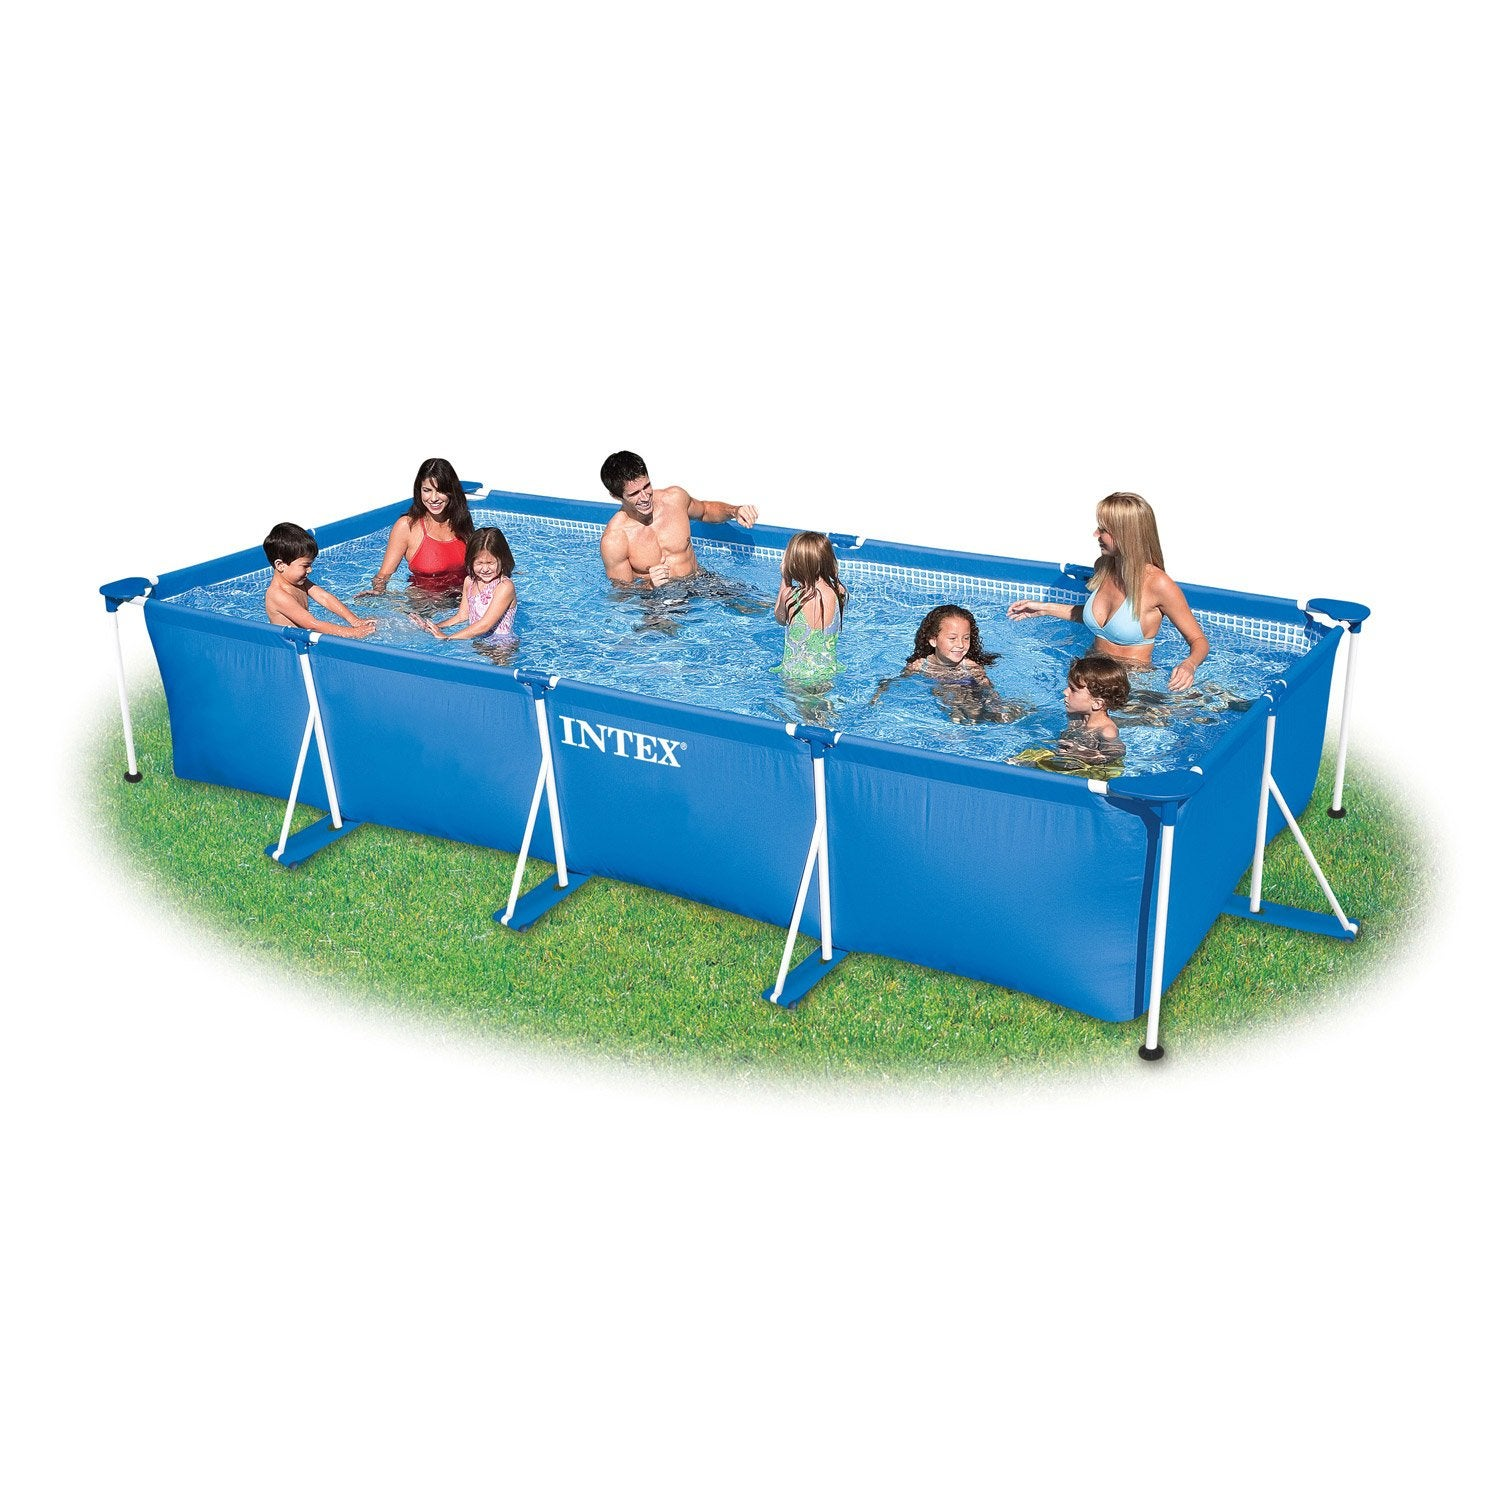 Piscine hors sol autoportante tubulaire intex l x l - Piscine hors sol intex ...